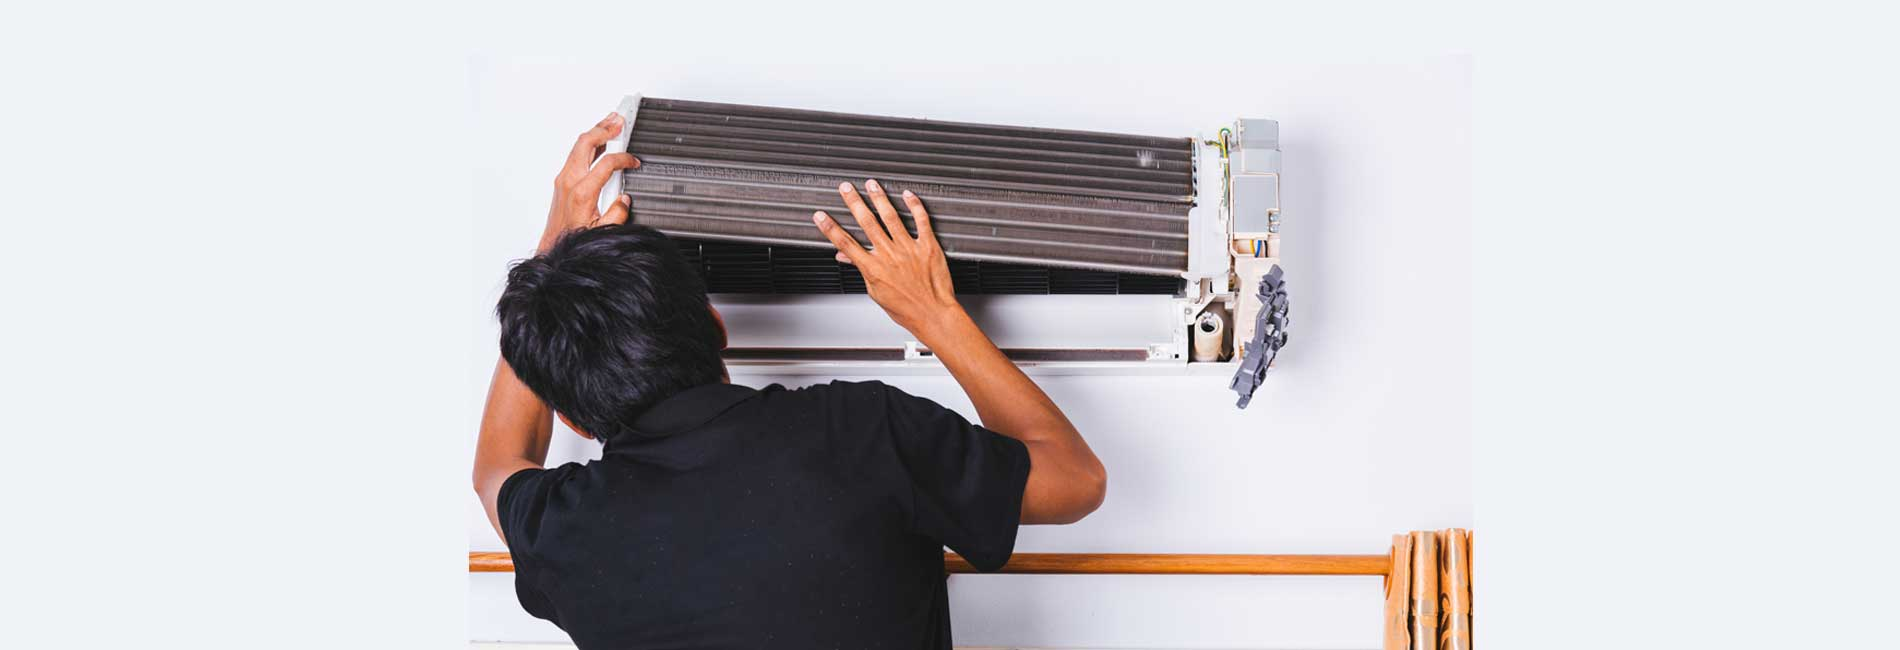 Bluestar Air Condition Repair in Maduravoyal